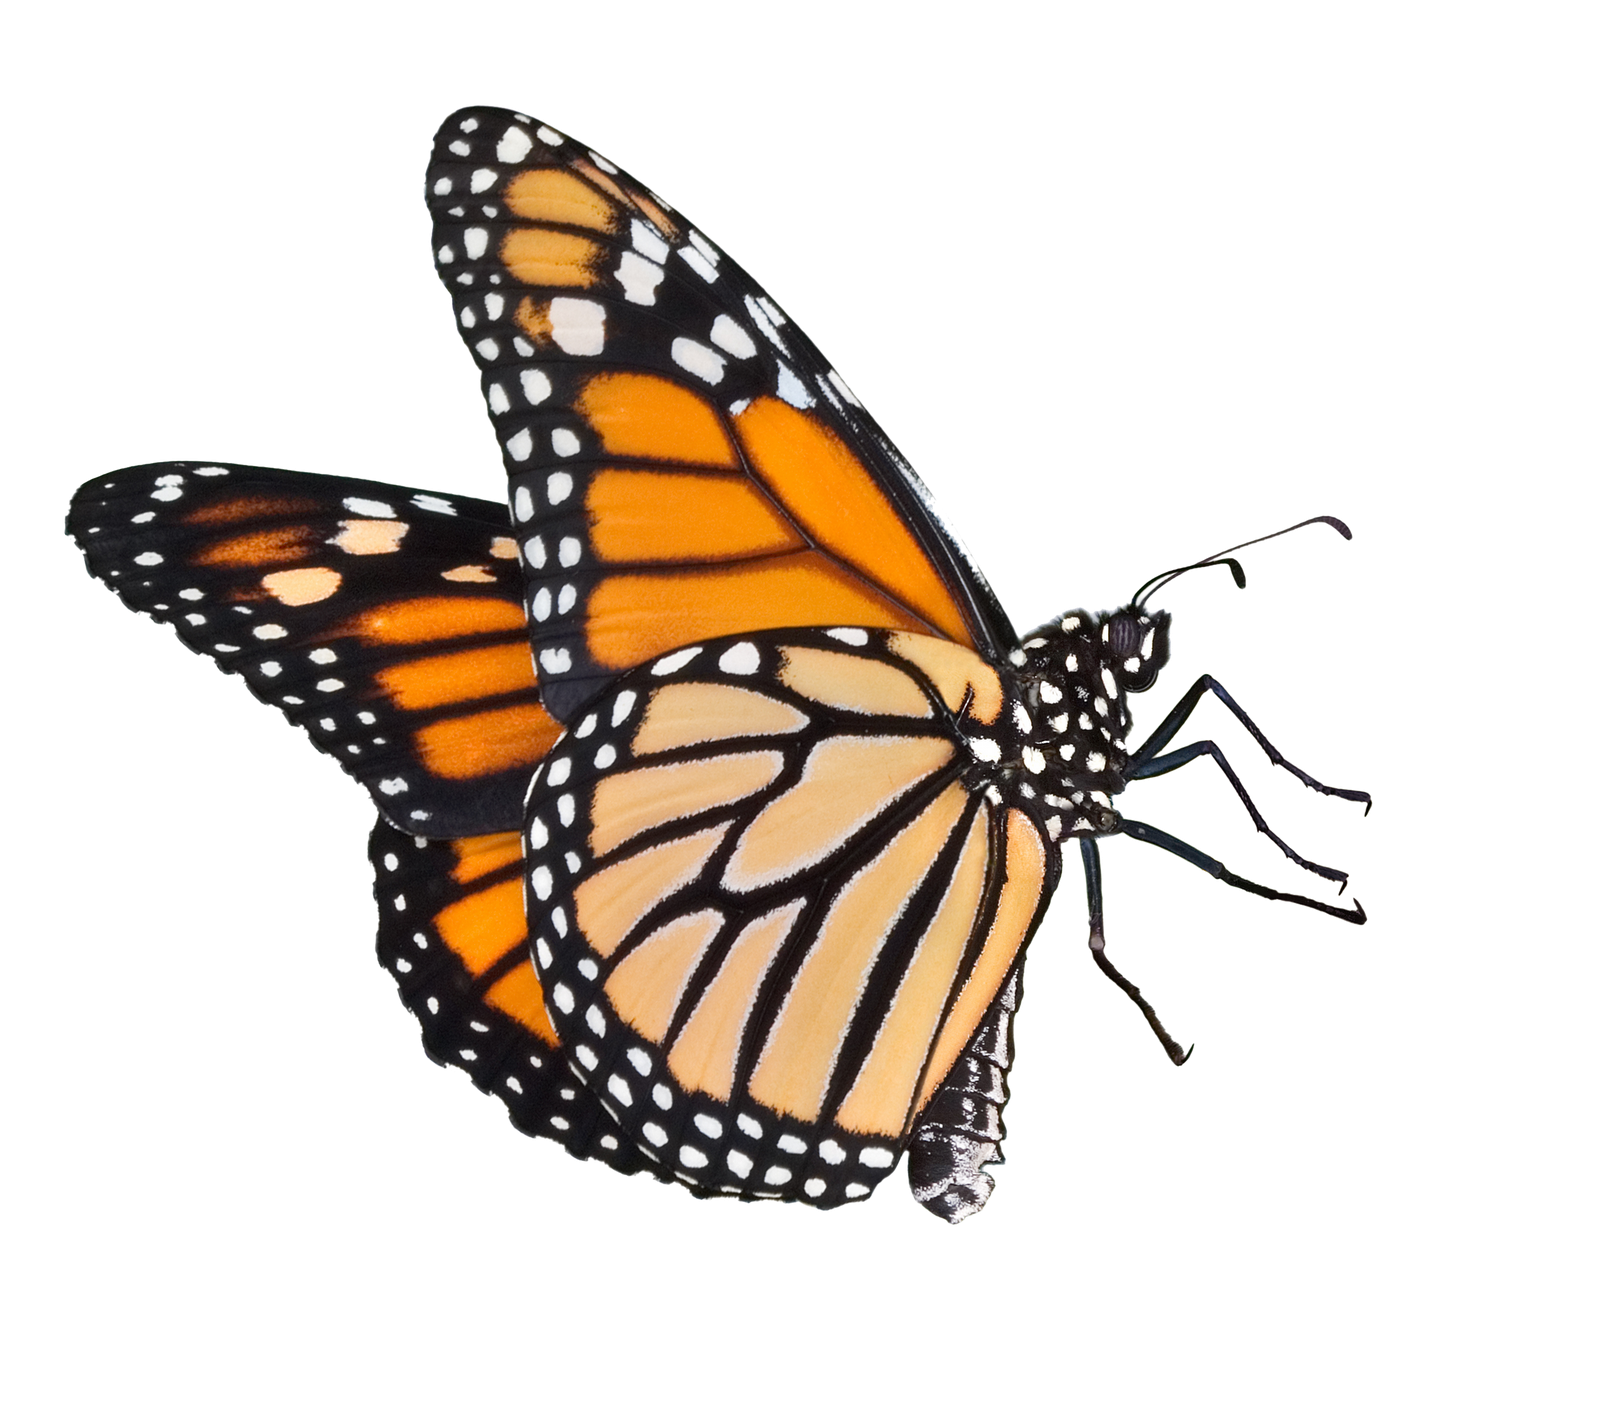 Realistic Butterfly Png Free & Free Realistic Butterfly.png.